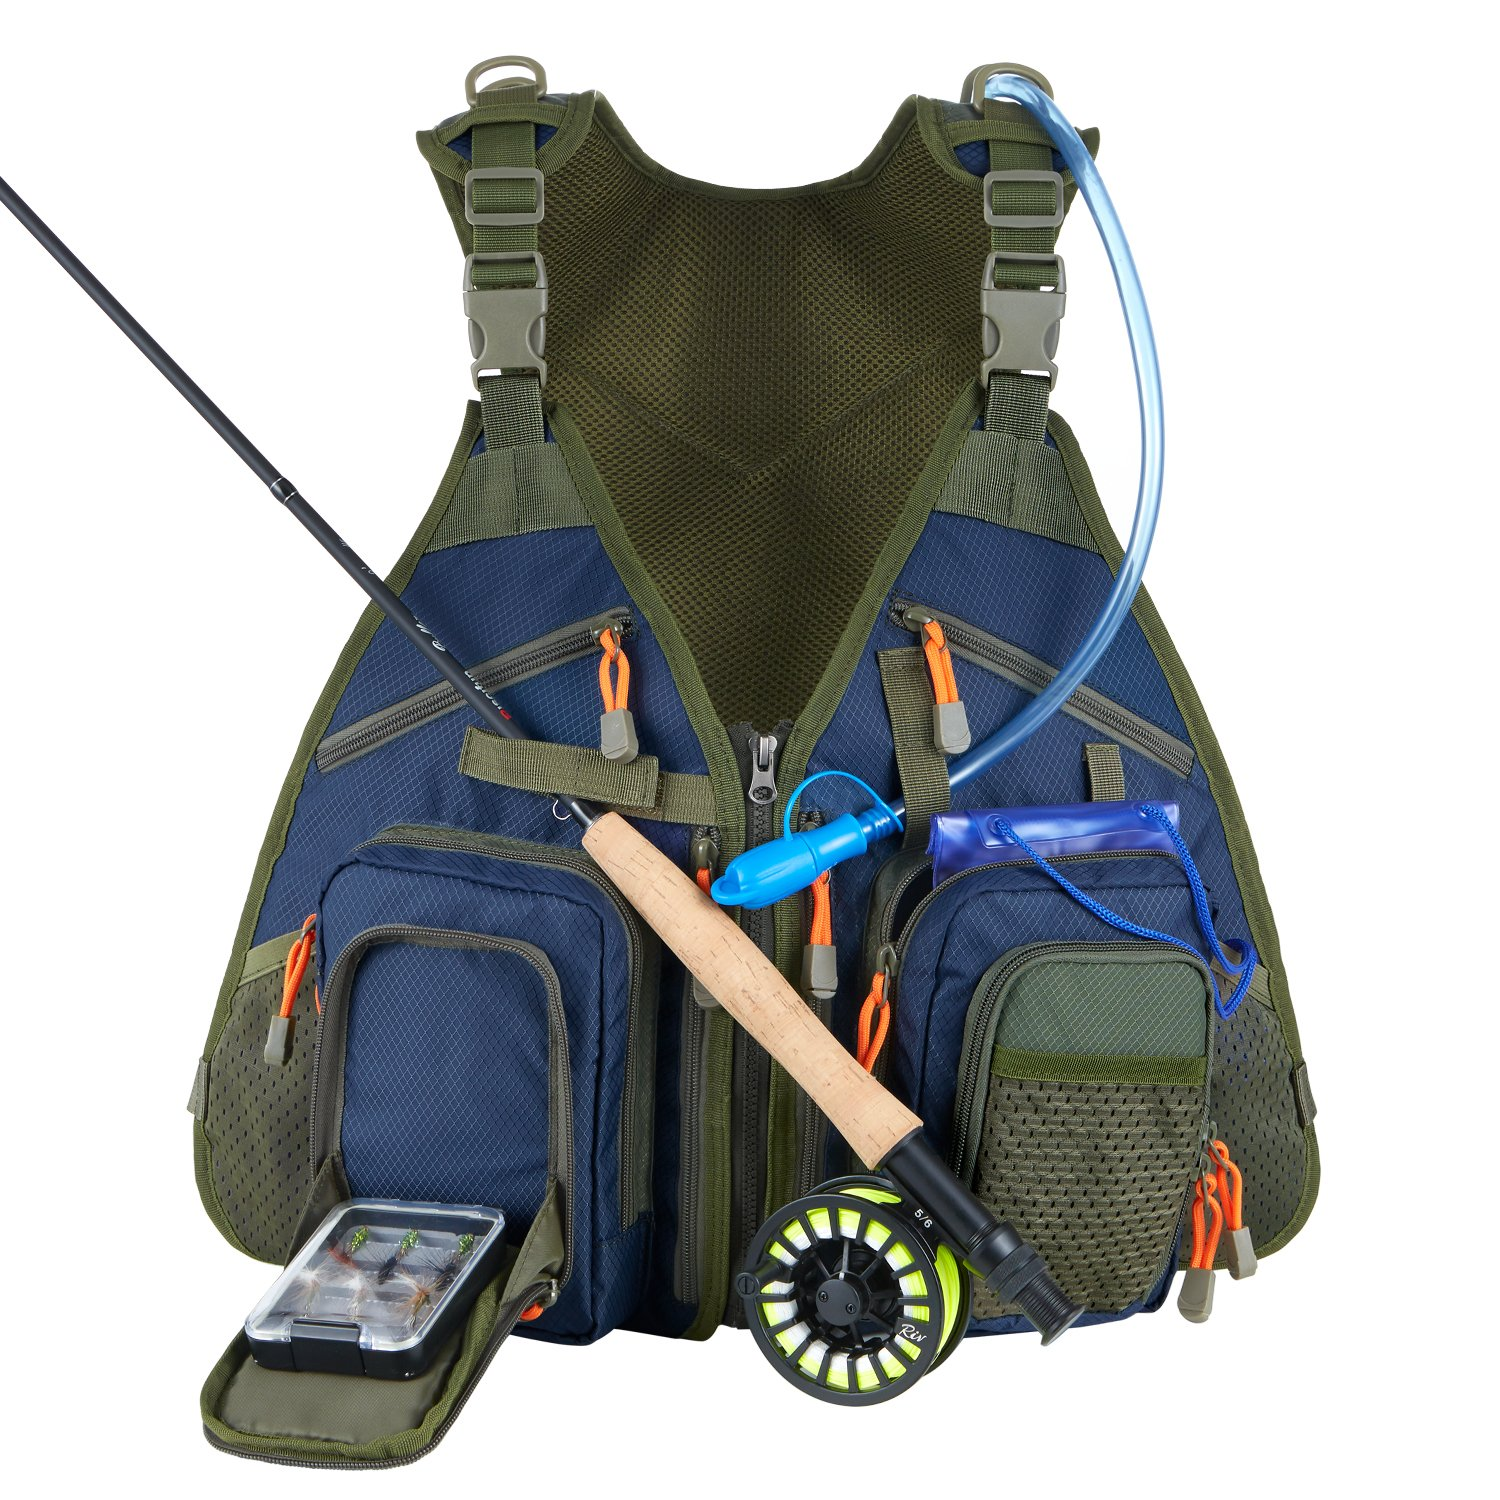 Piscifun Fishing Vest Backpack Adjustable Size Fly Fishing Vest Pack for Tackle and Gear Includes Water Bladder and Waterproof Phone Pouch